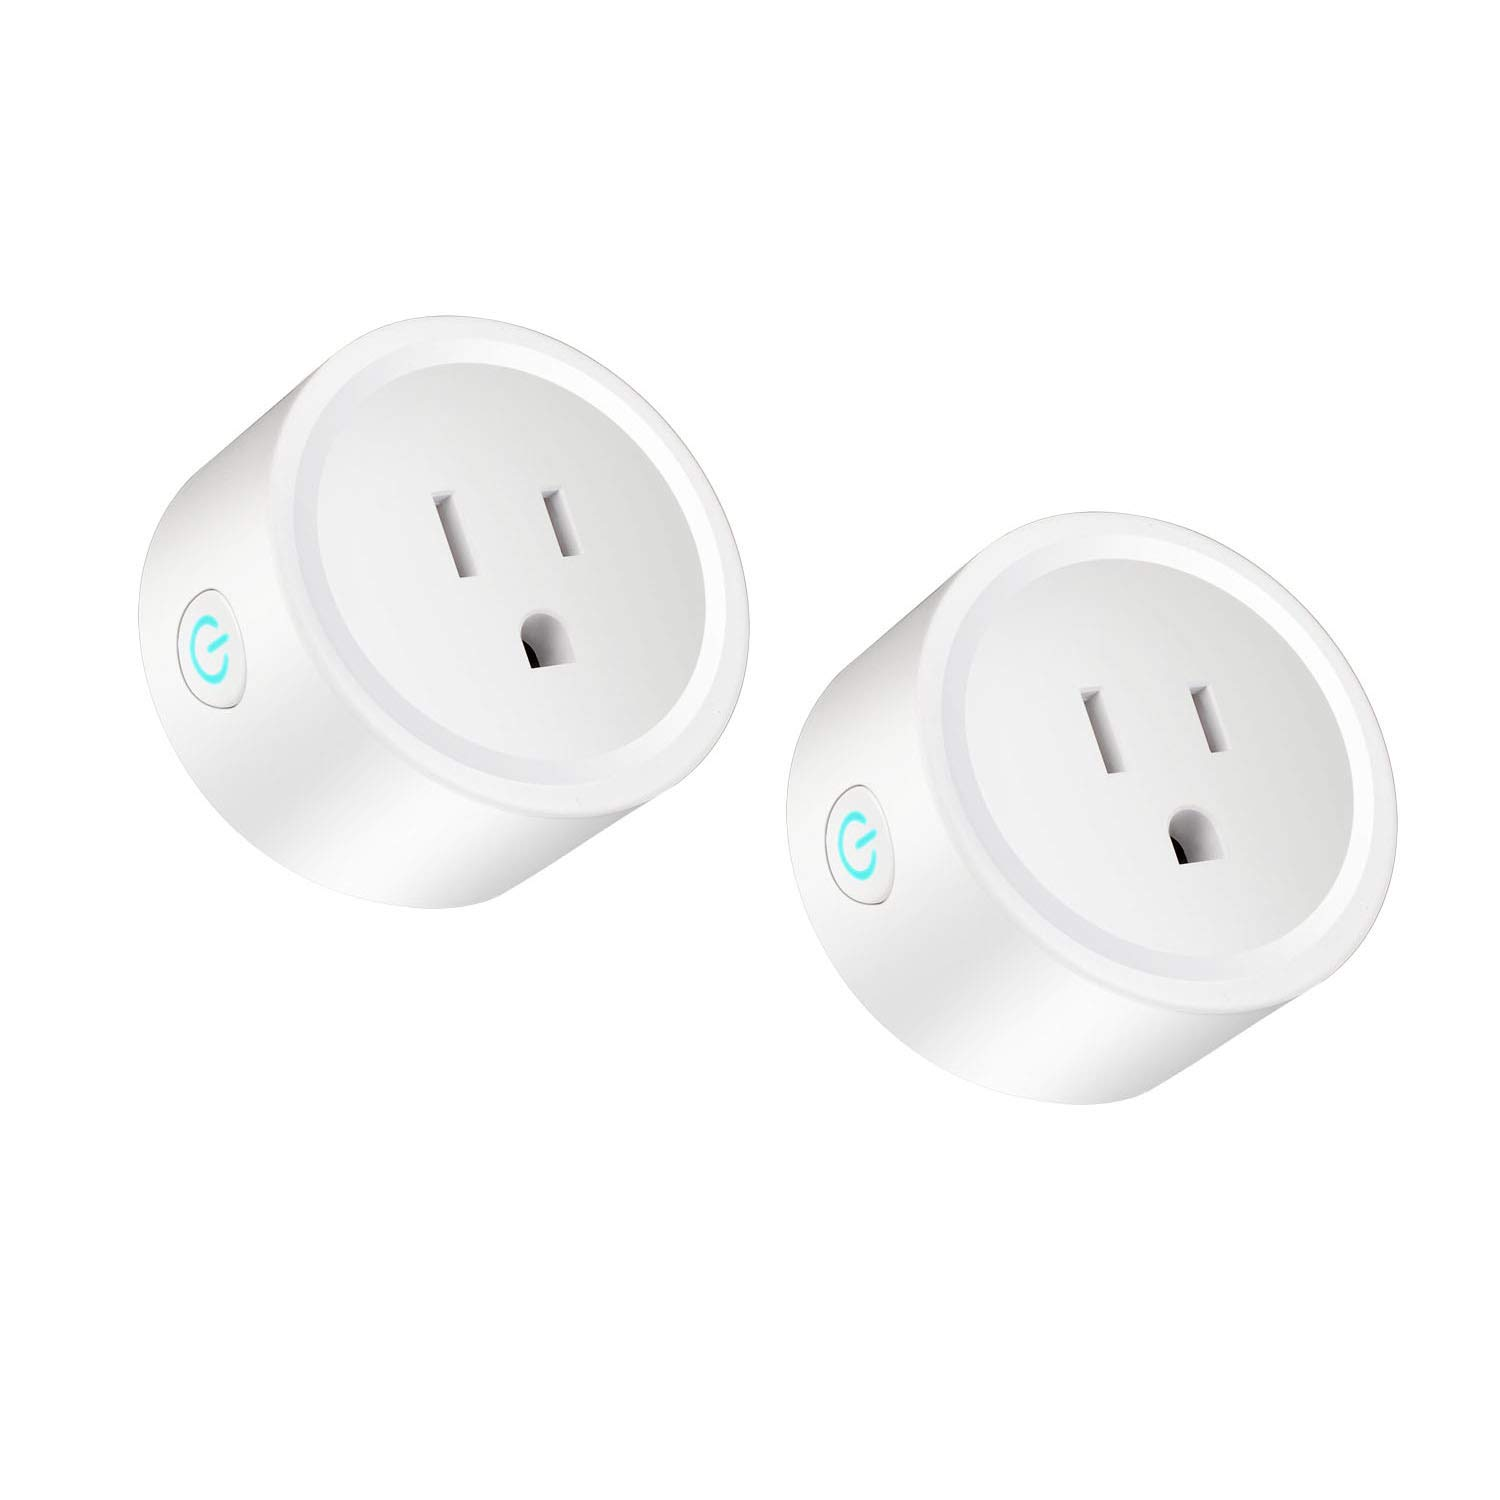 TEESSO WiFi Smart Plug Work with Amazon Alexa, Google Home, IFTTT, Mini Wireless Outlet Switch Remote Control Your Devices from Anywhere-2 Pack